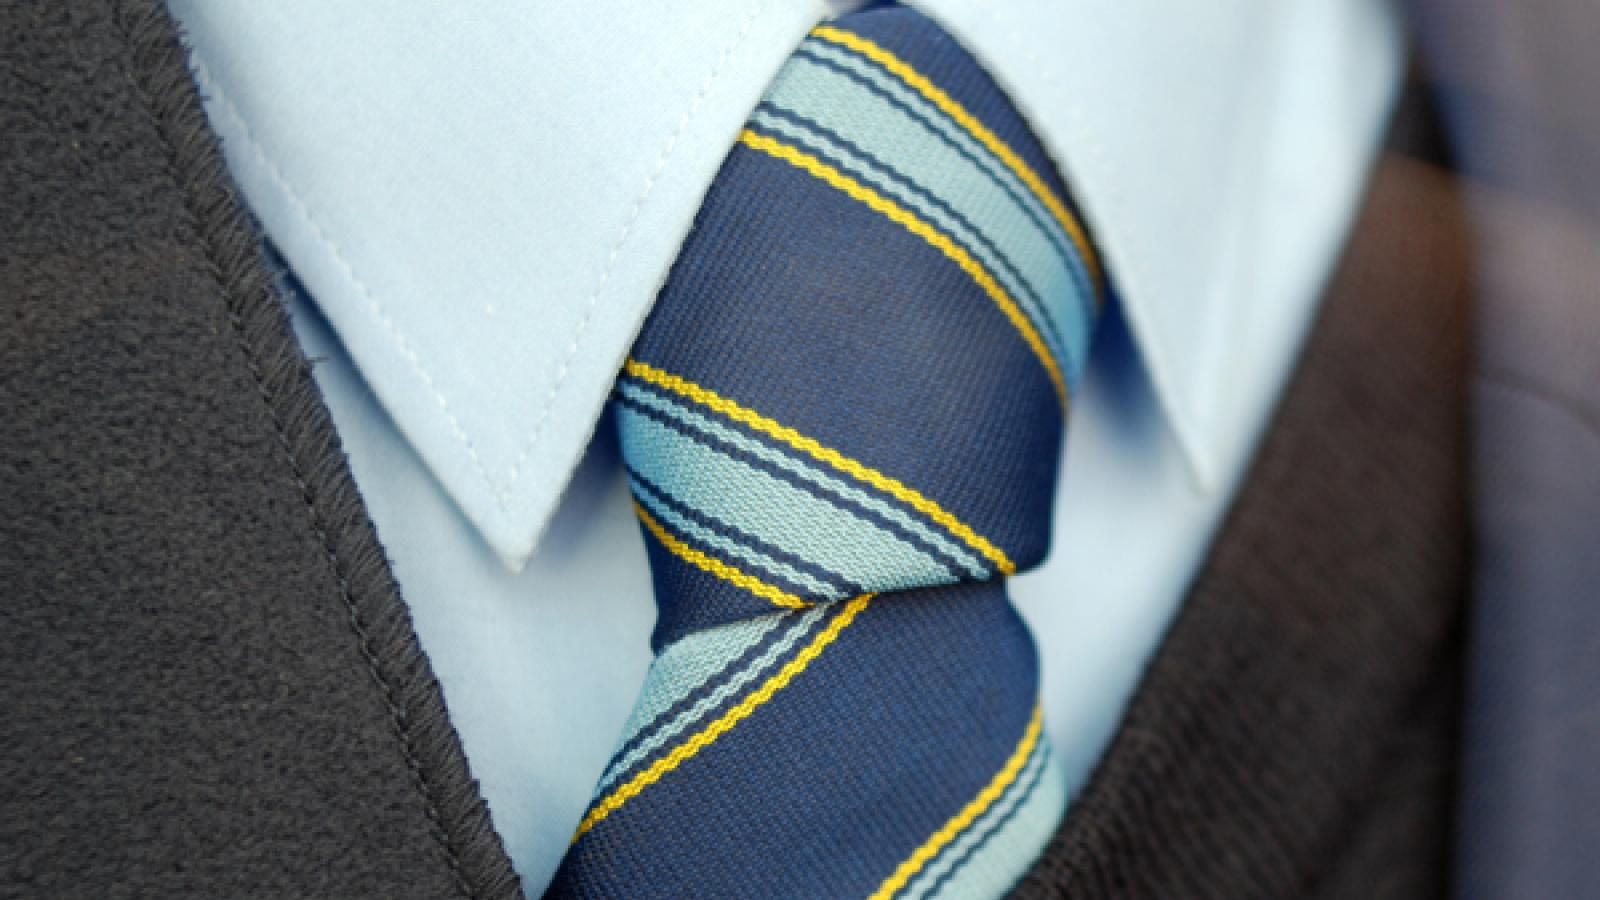 Image of school uniform - shirt, tie and blazer